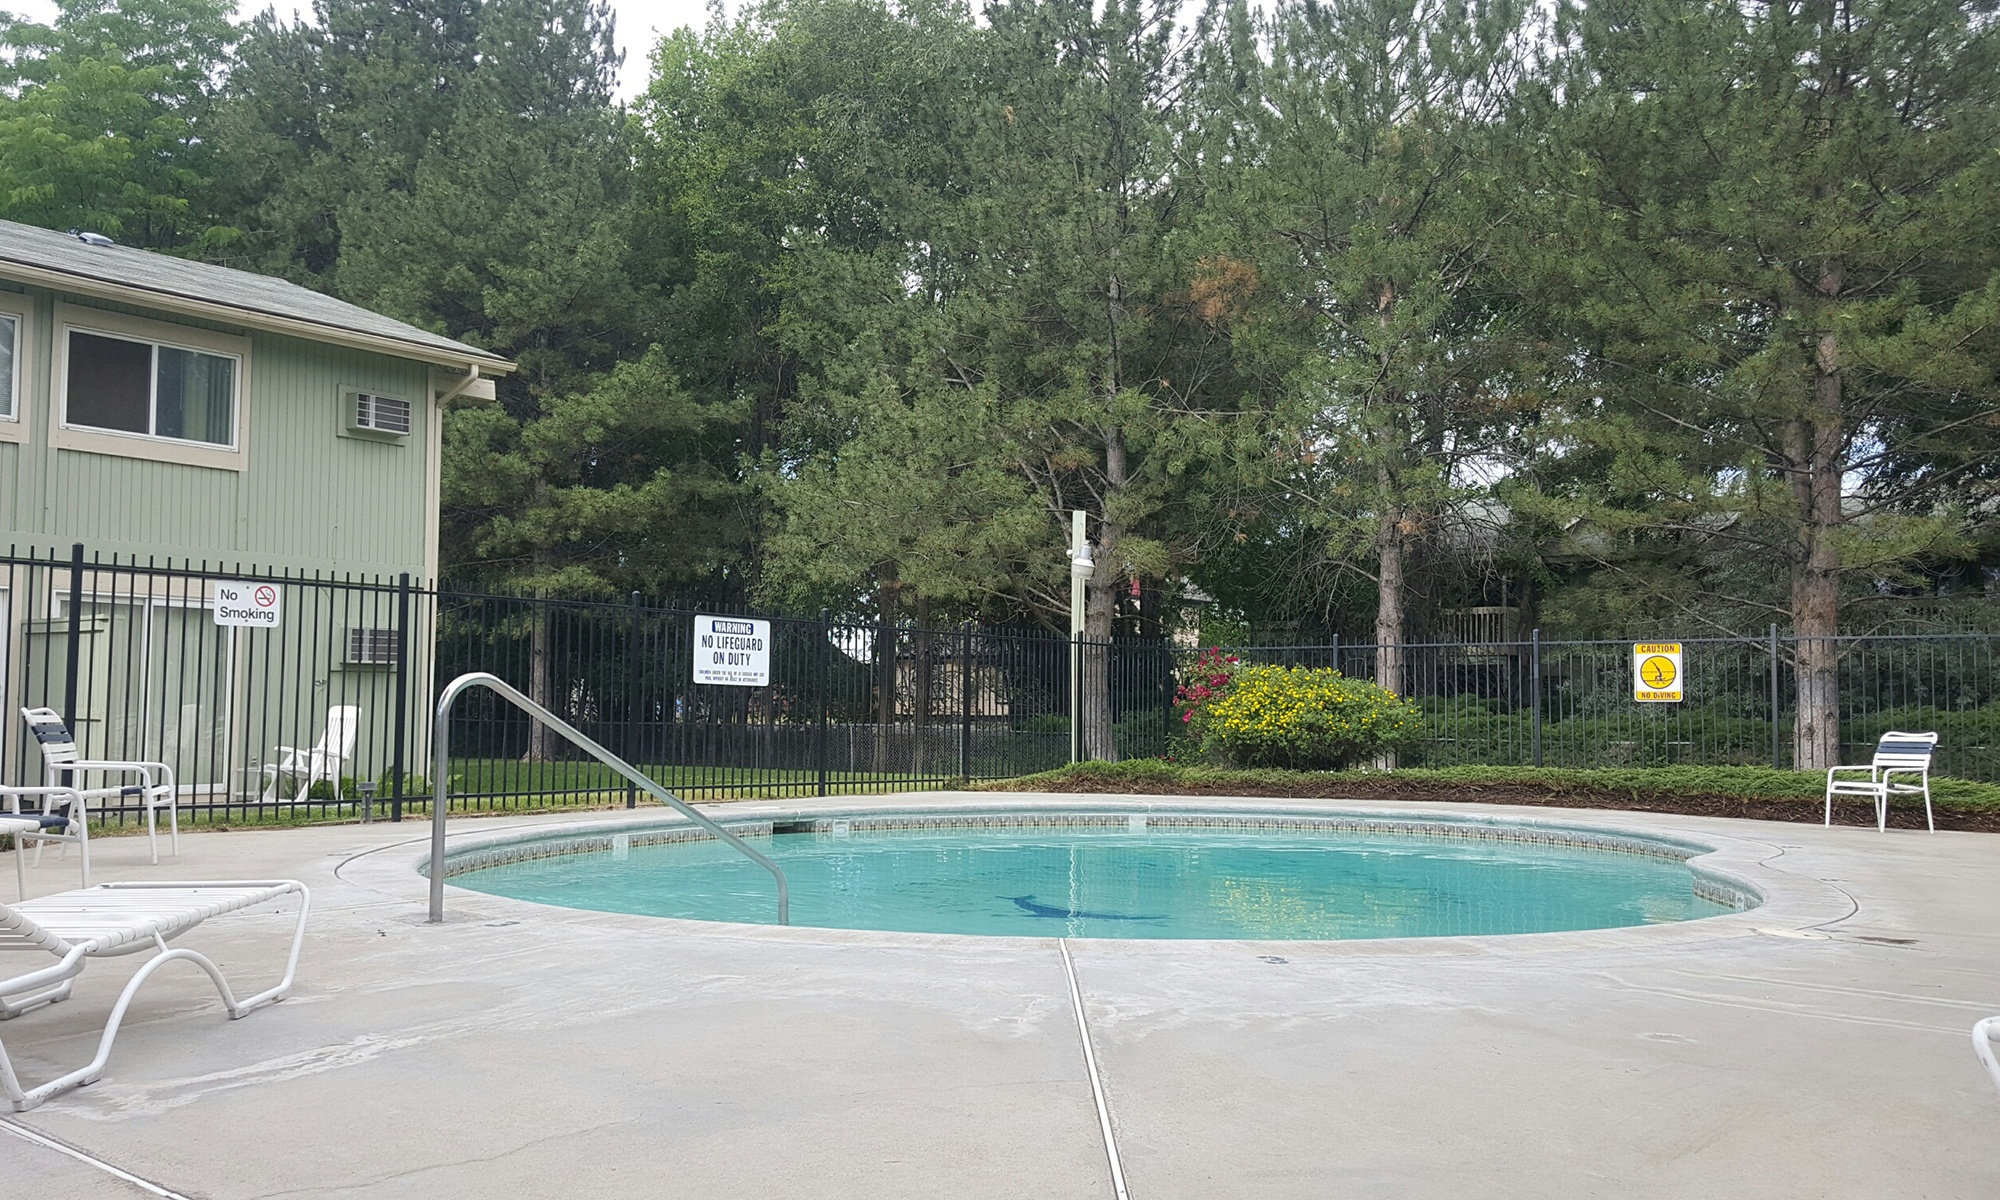 Meridian townhomes apartments for rent james court for 1 bedroom apartments in meridian idaho